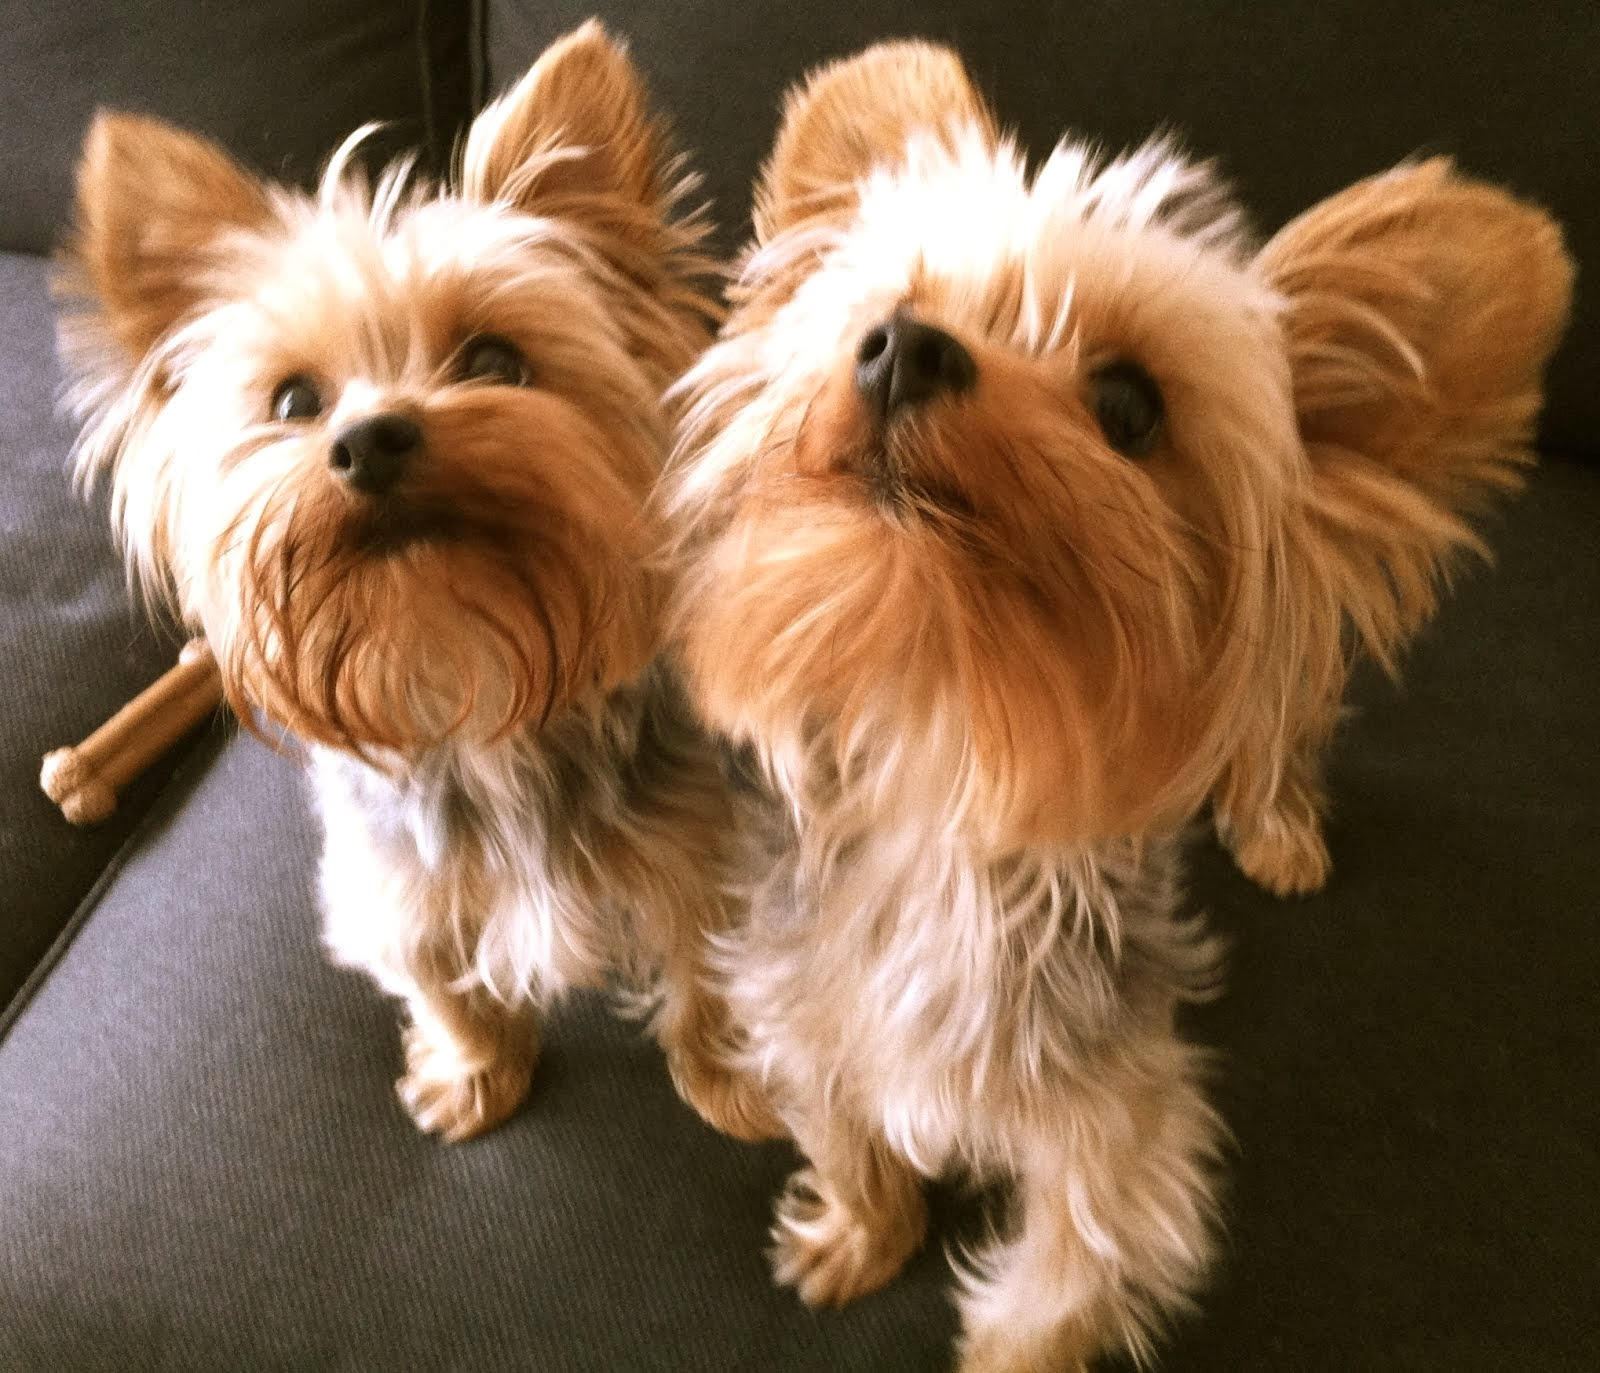 These are my Pups